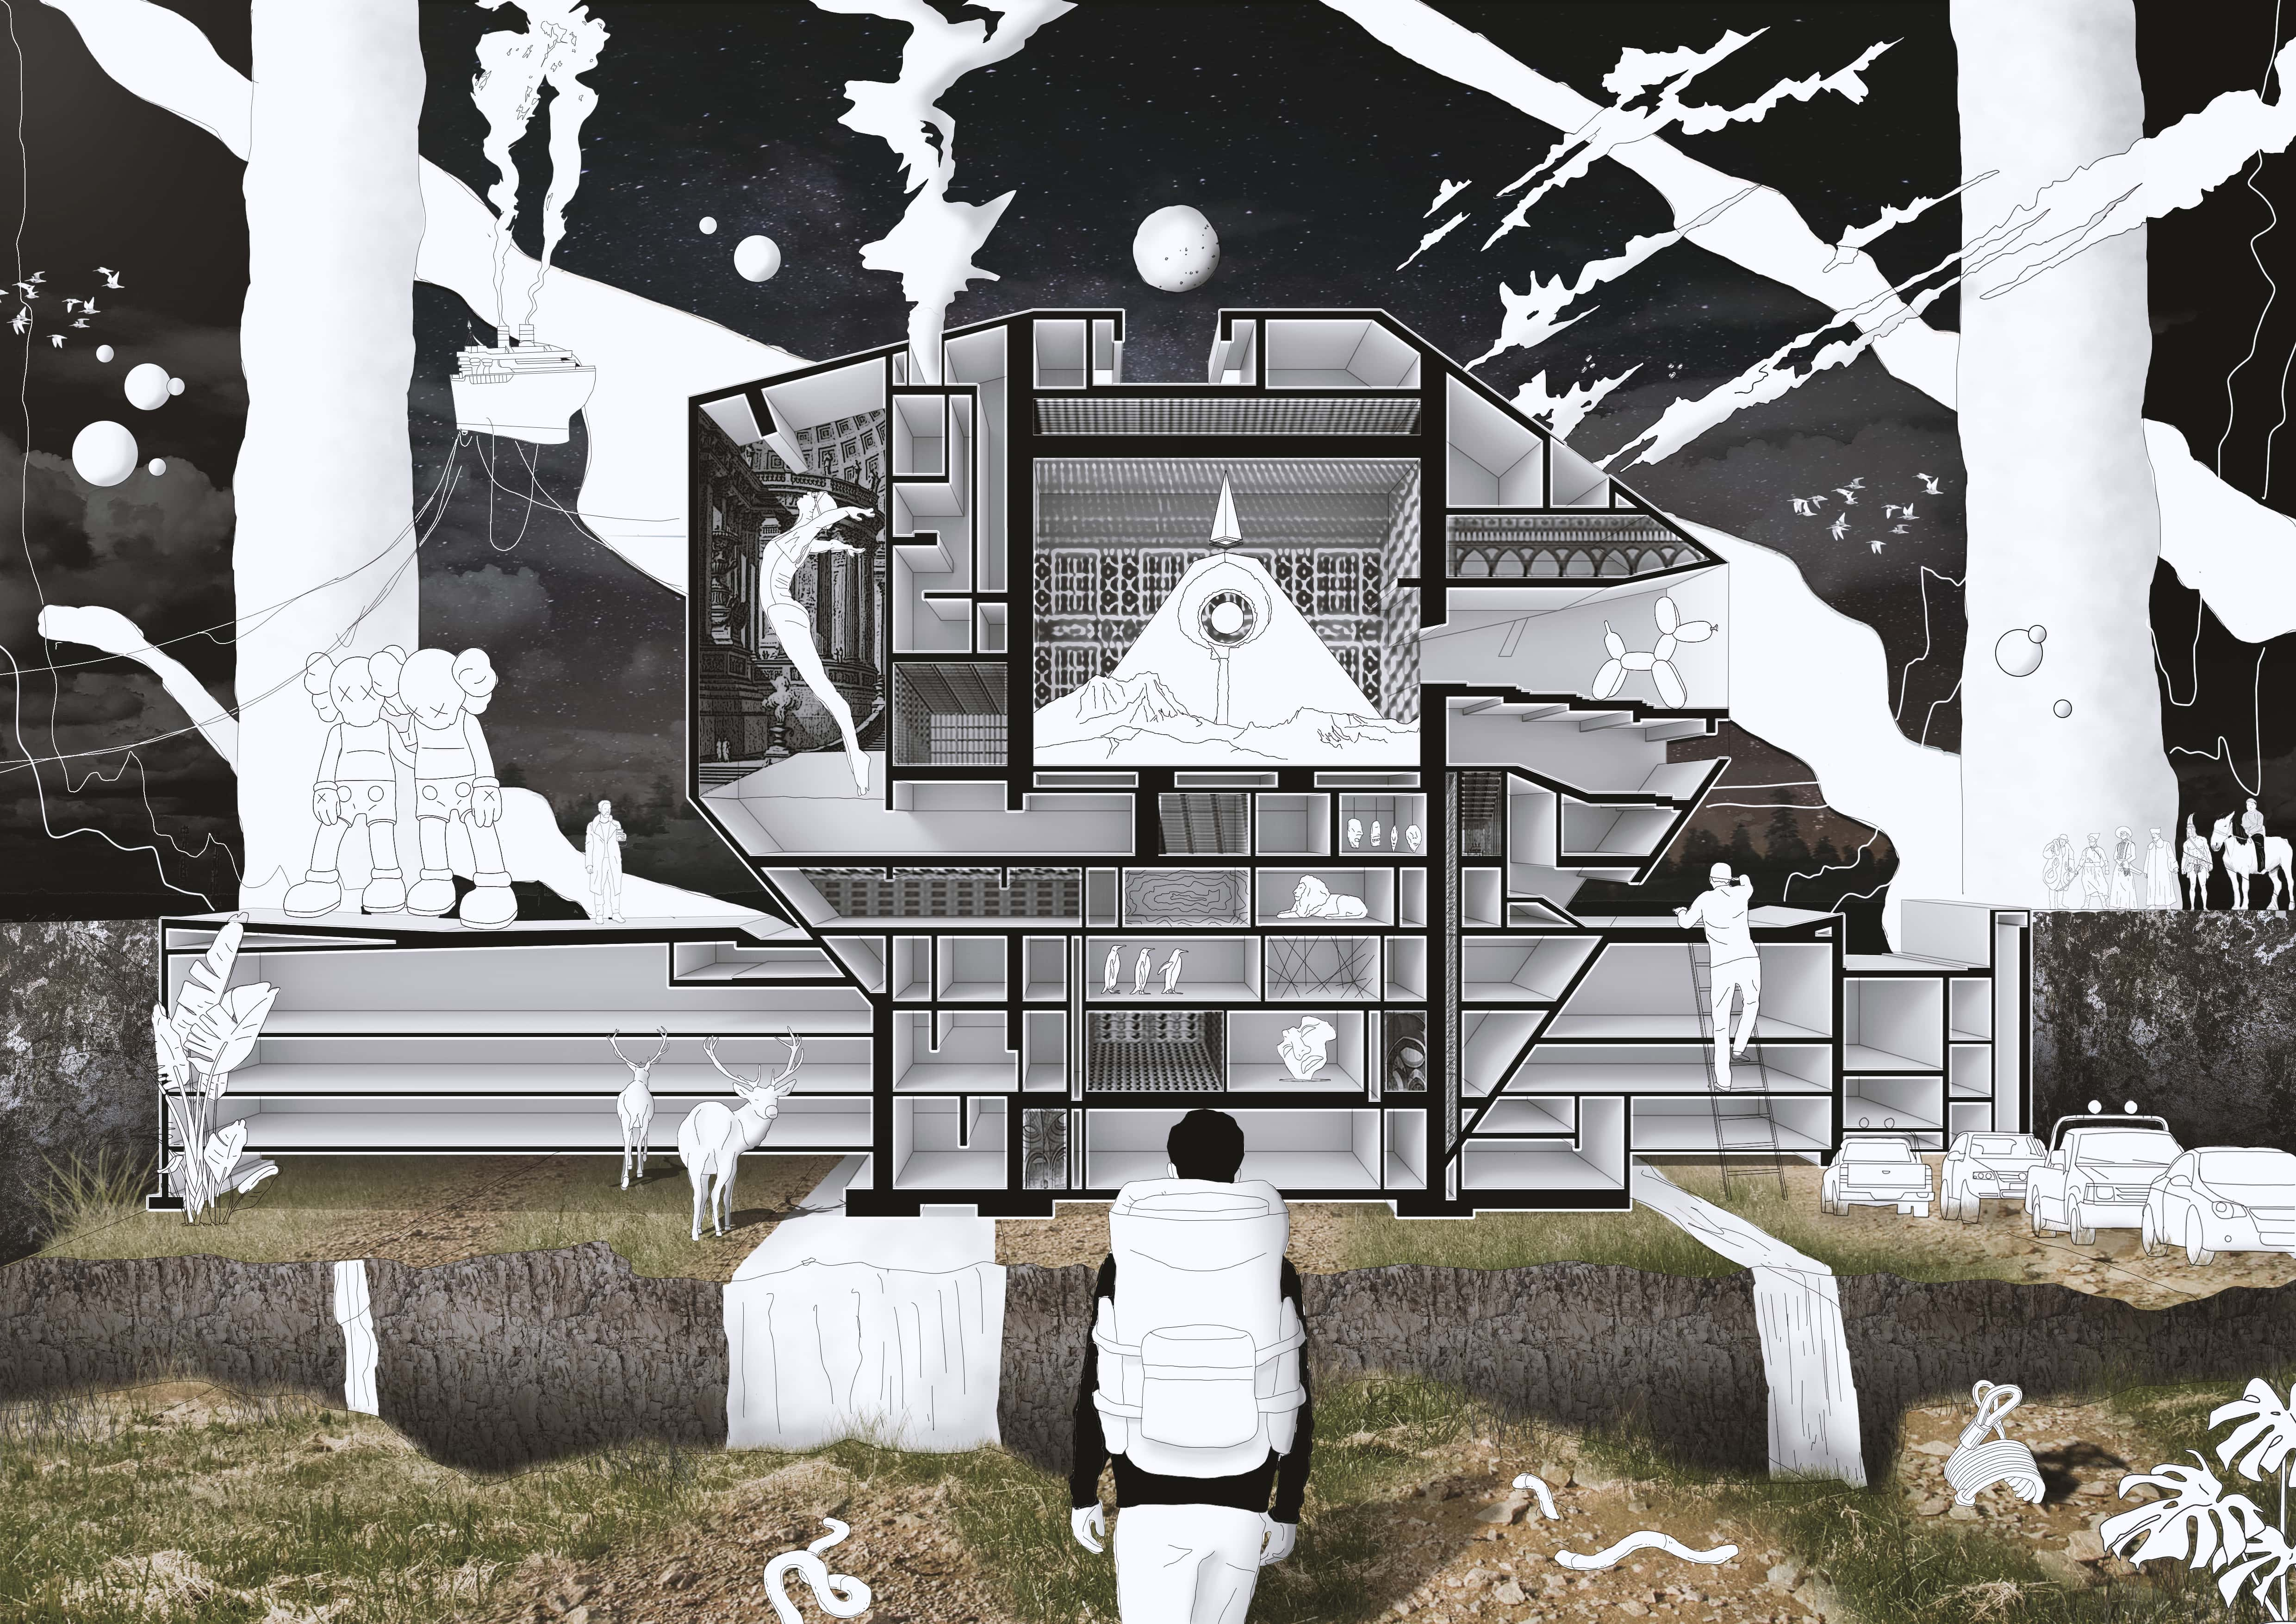 Architecture as the world container